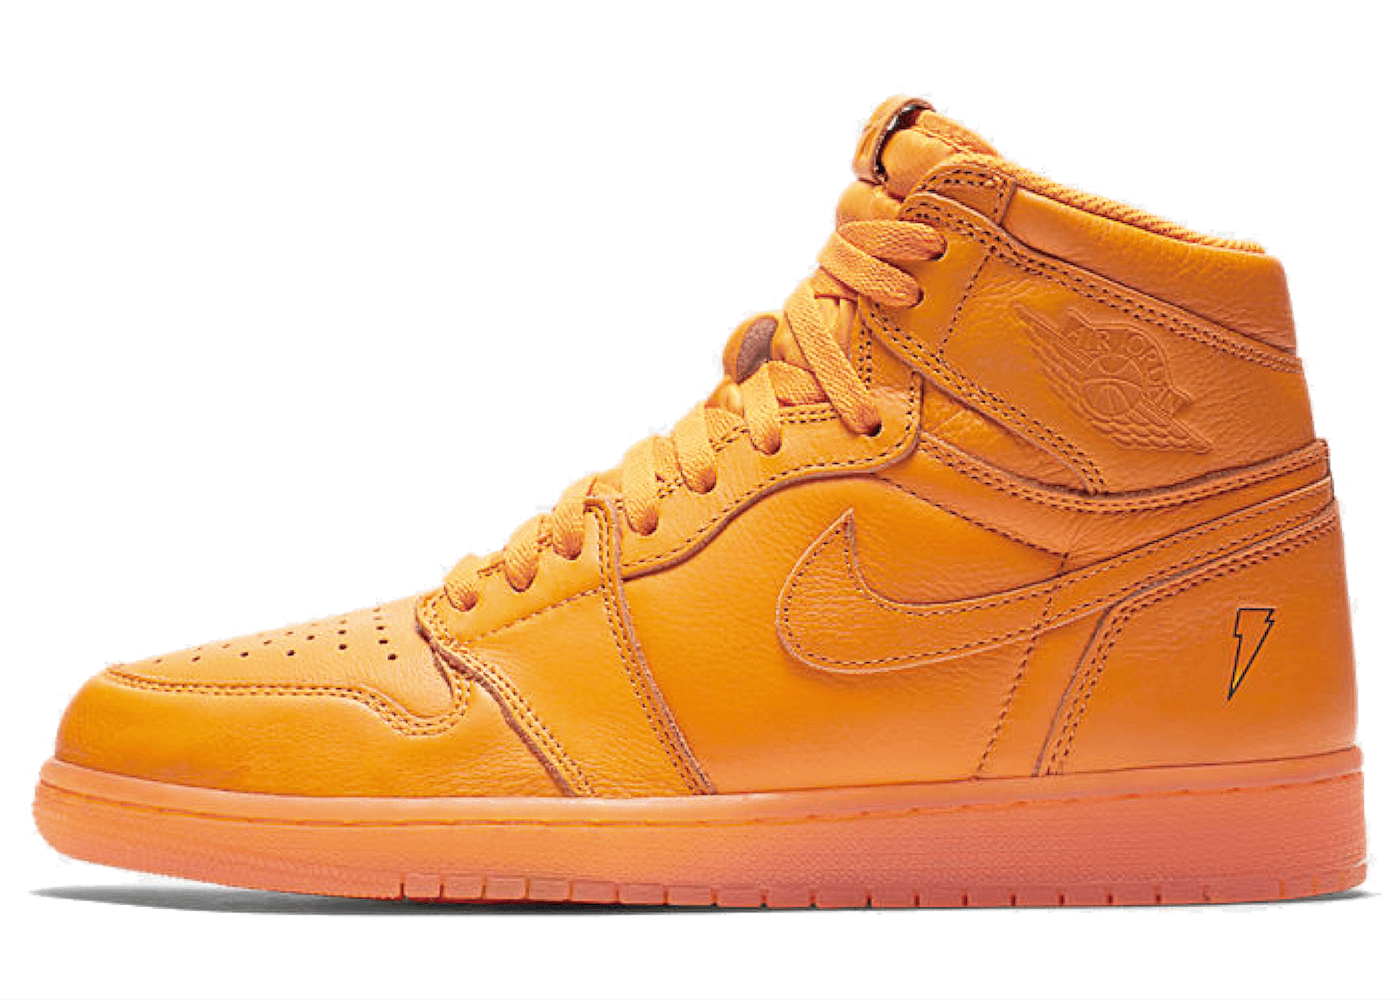 Jordan 1 Retro High Gatorade Orange Peelの写真